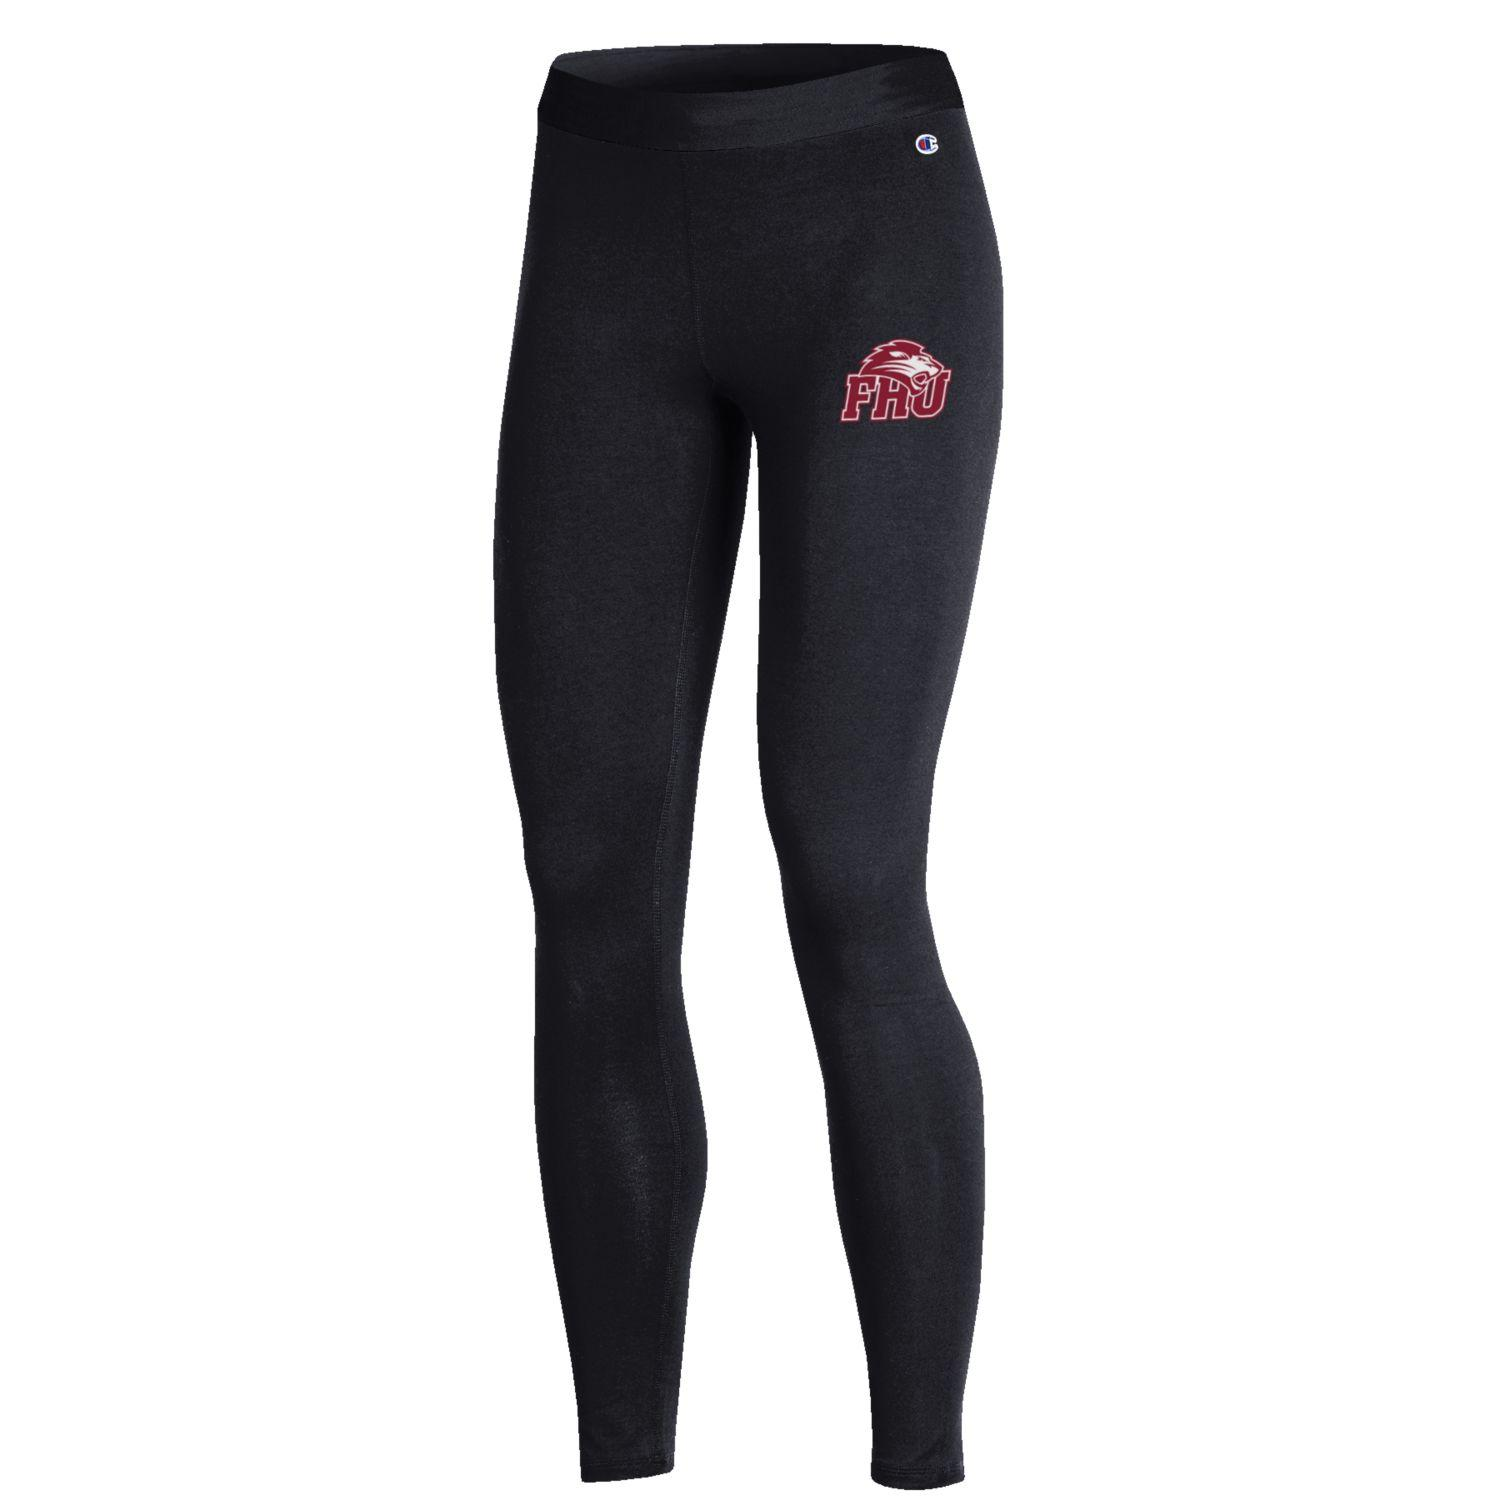 Champion Cotton Stretch Leggings